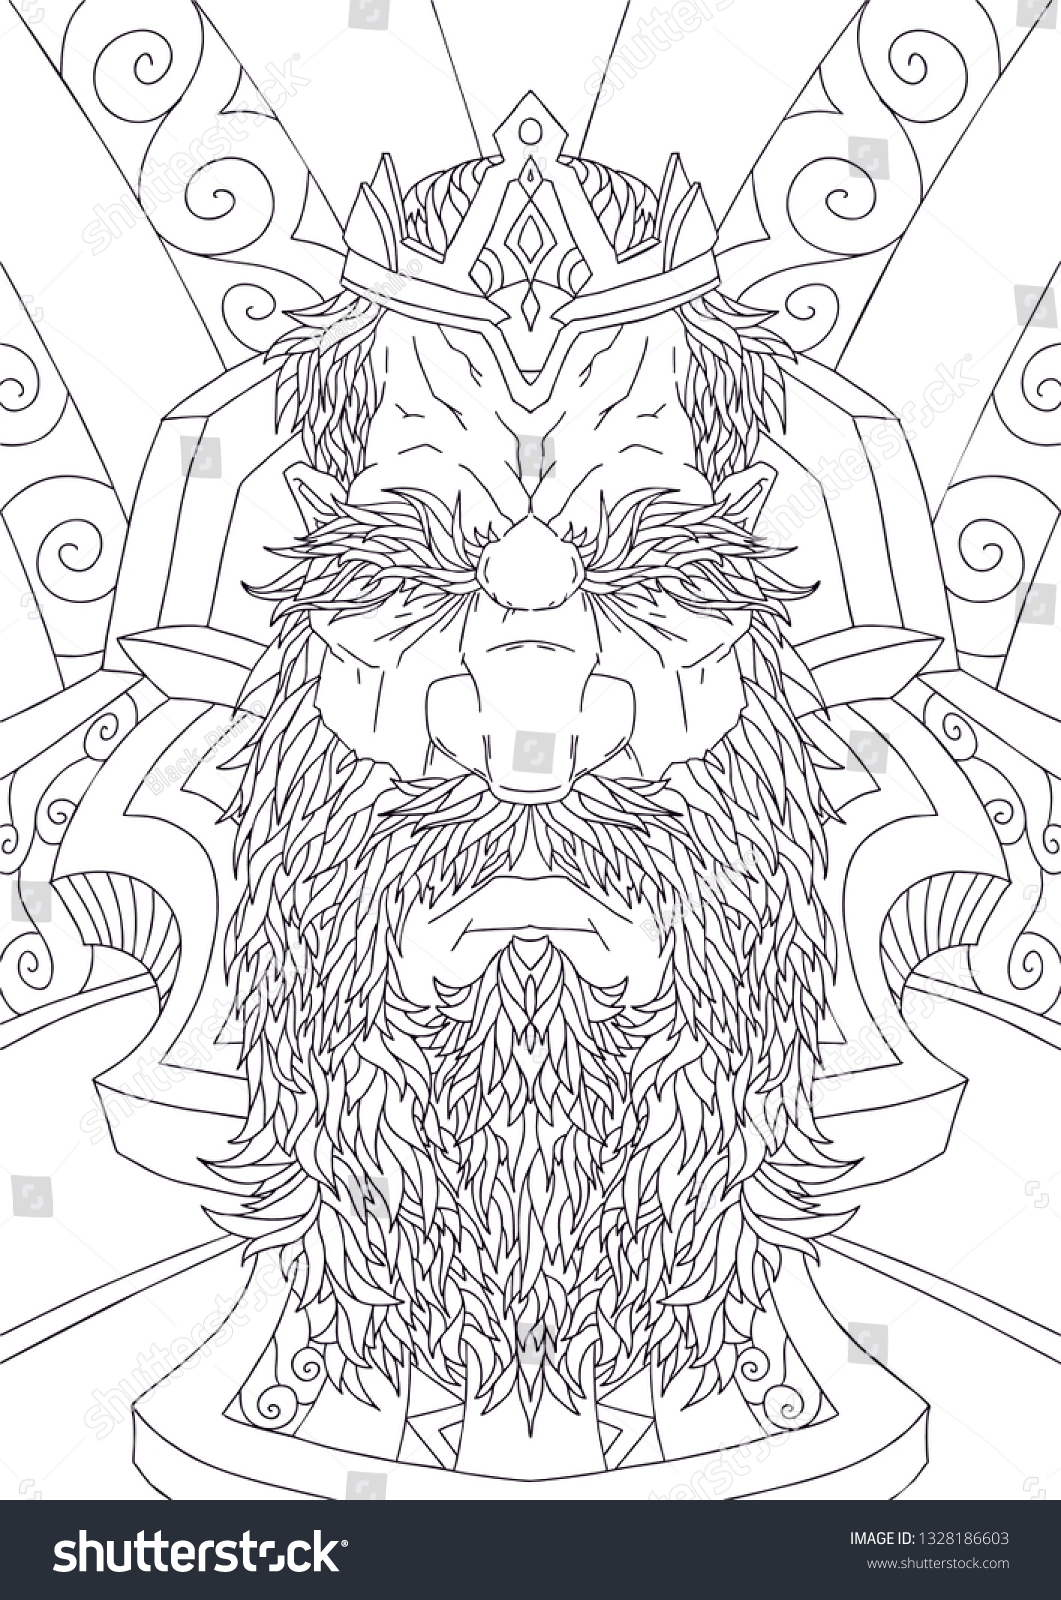 Bearded man with mustache for adult coloring pages tattoo art ethnic patterned t